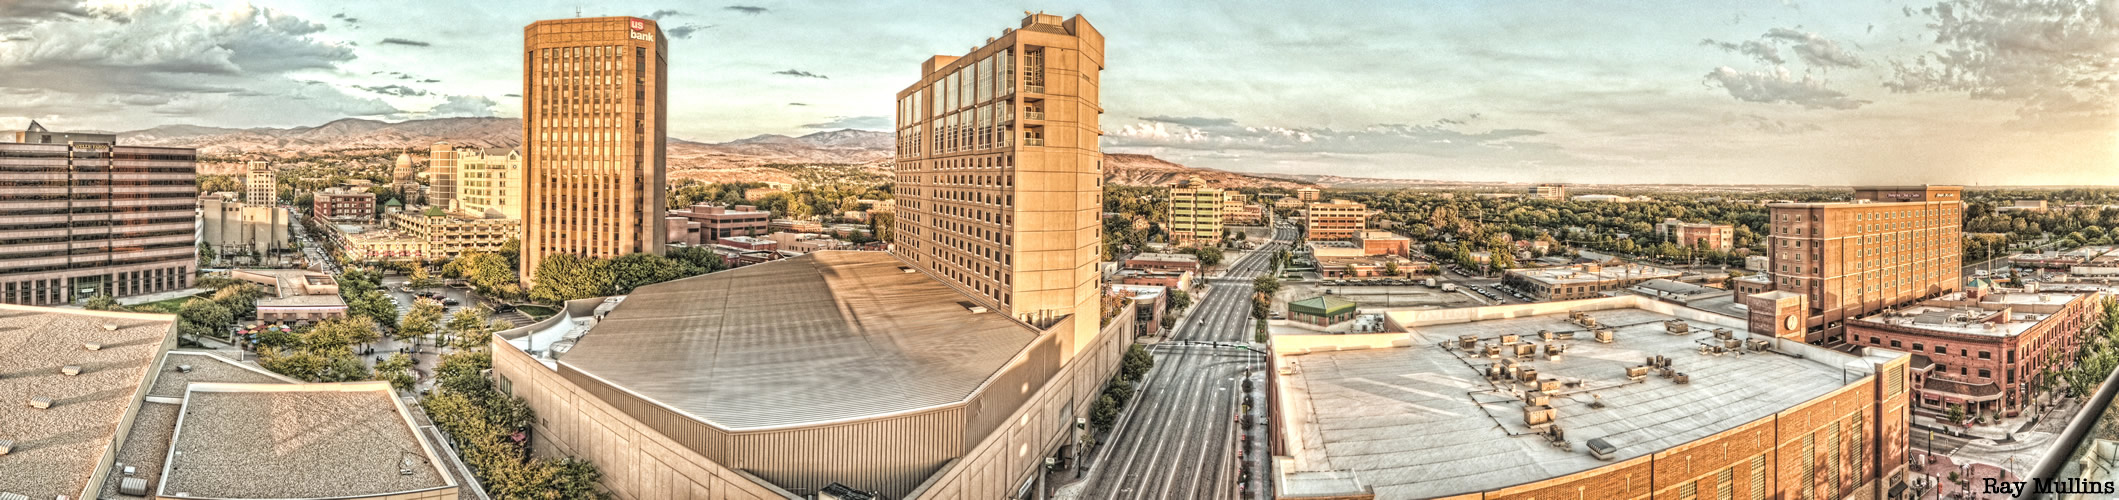 Boise Idaho Panoramic Photo of City